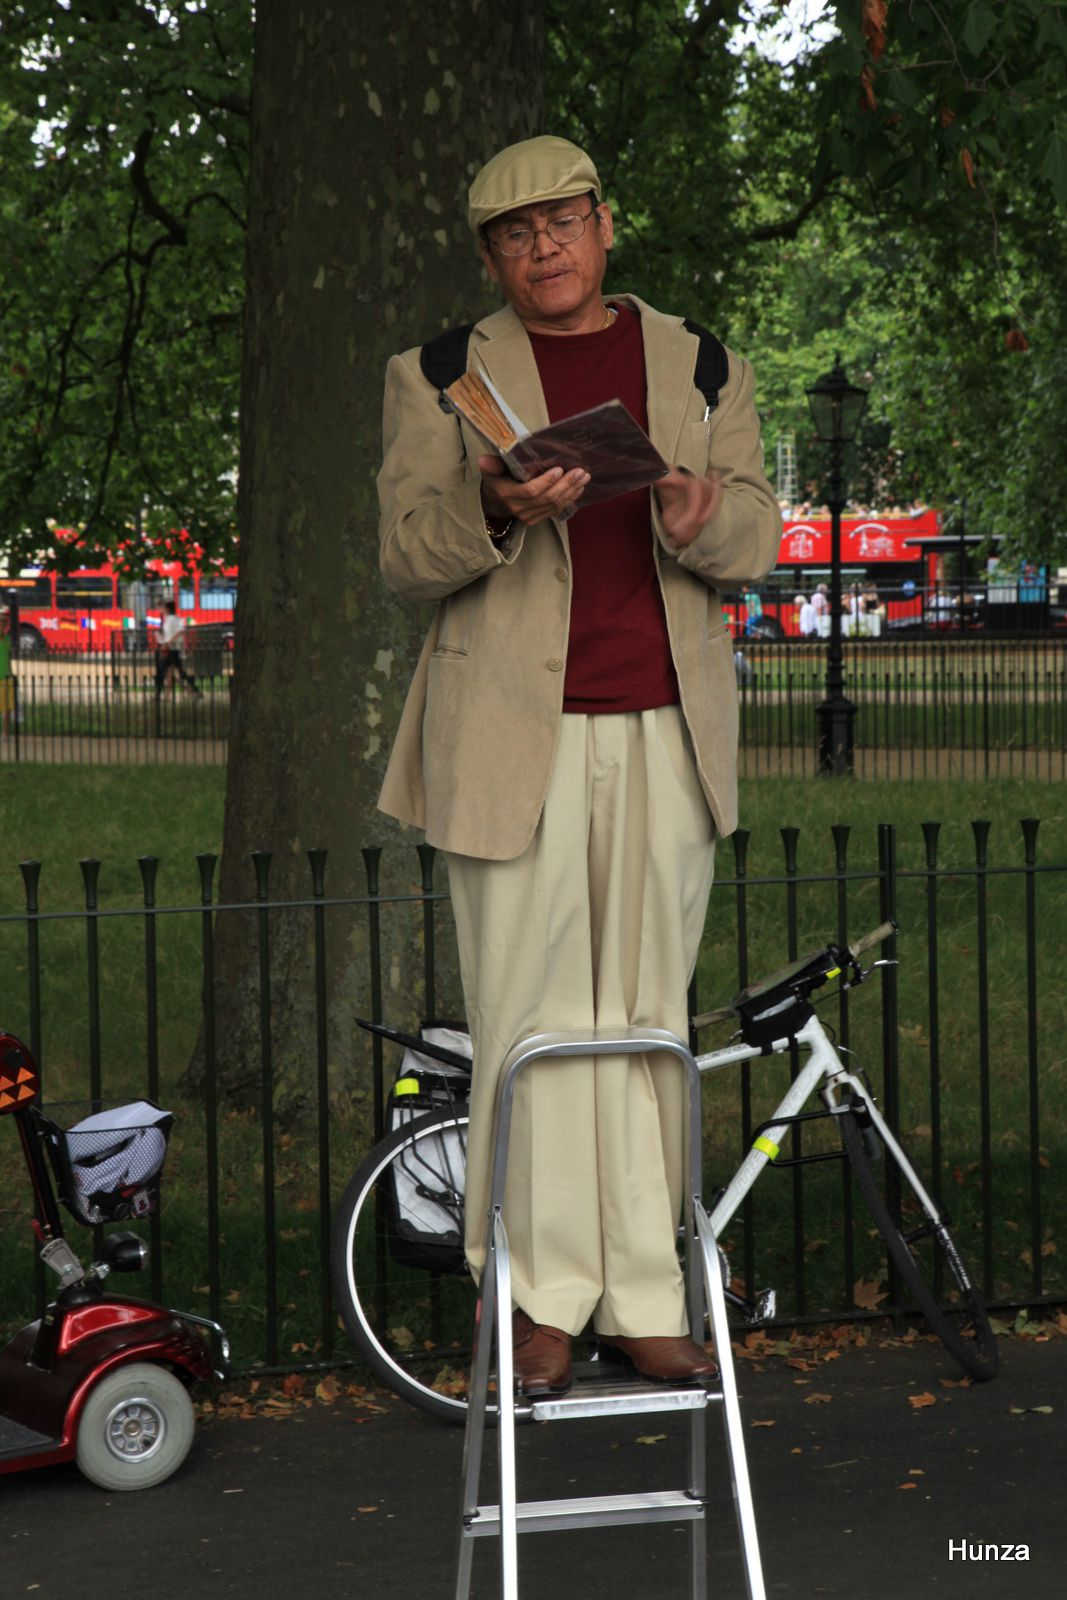 Speaker'corner, Hyde Park